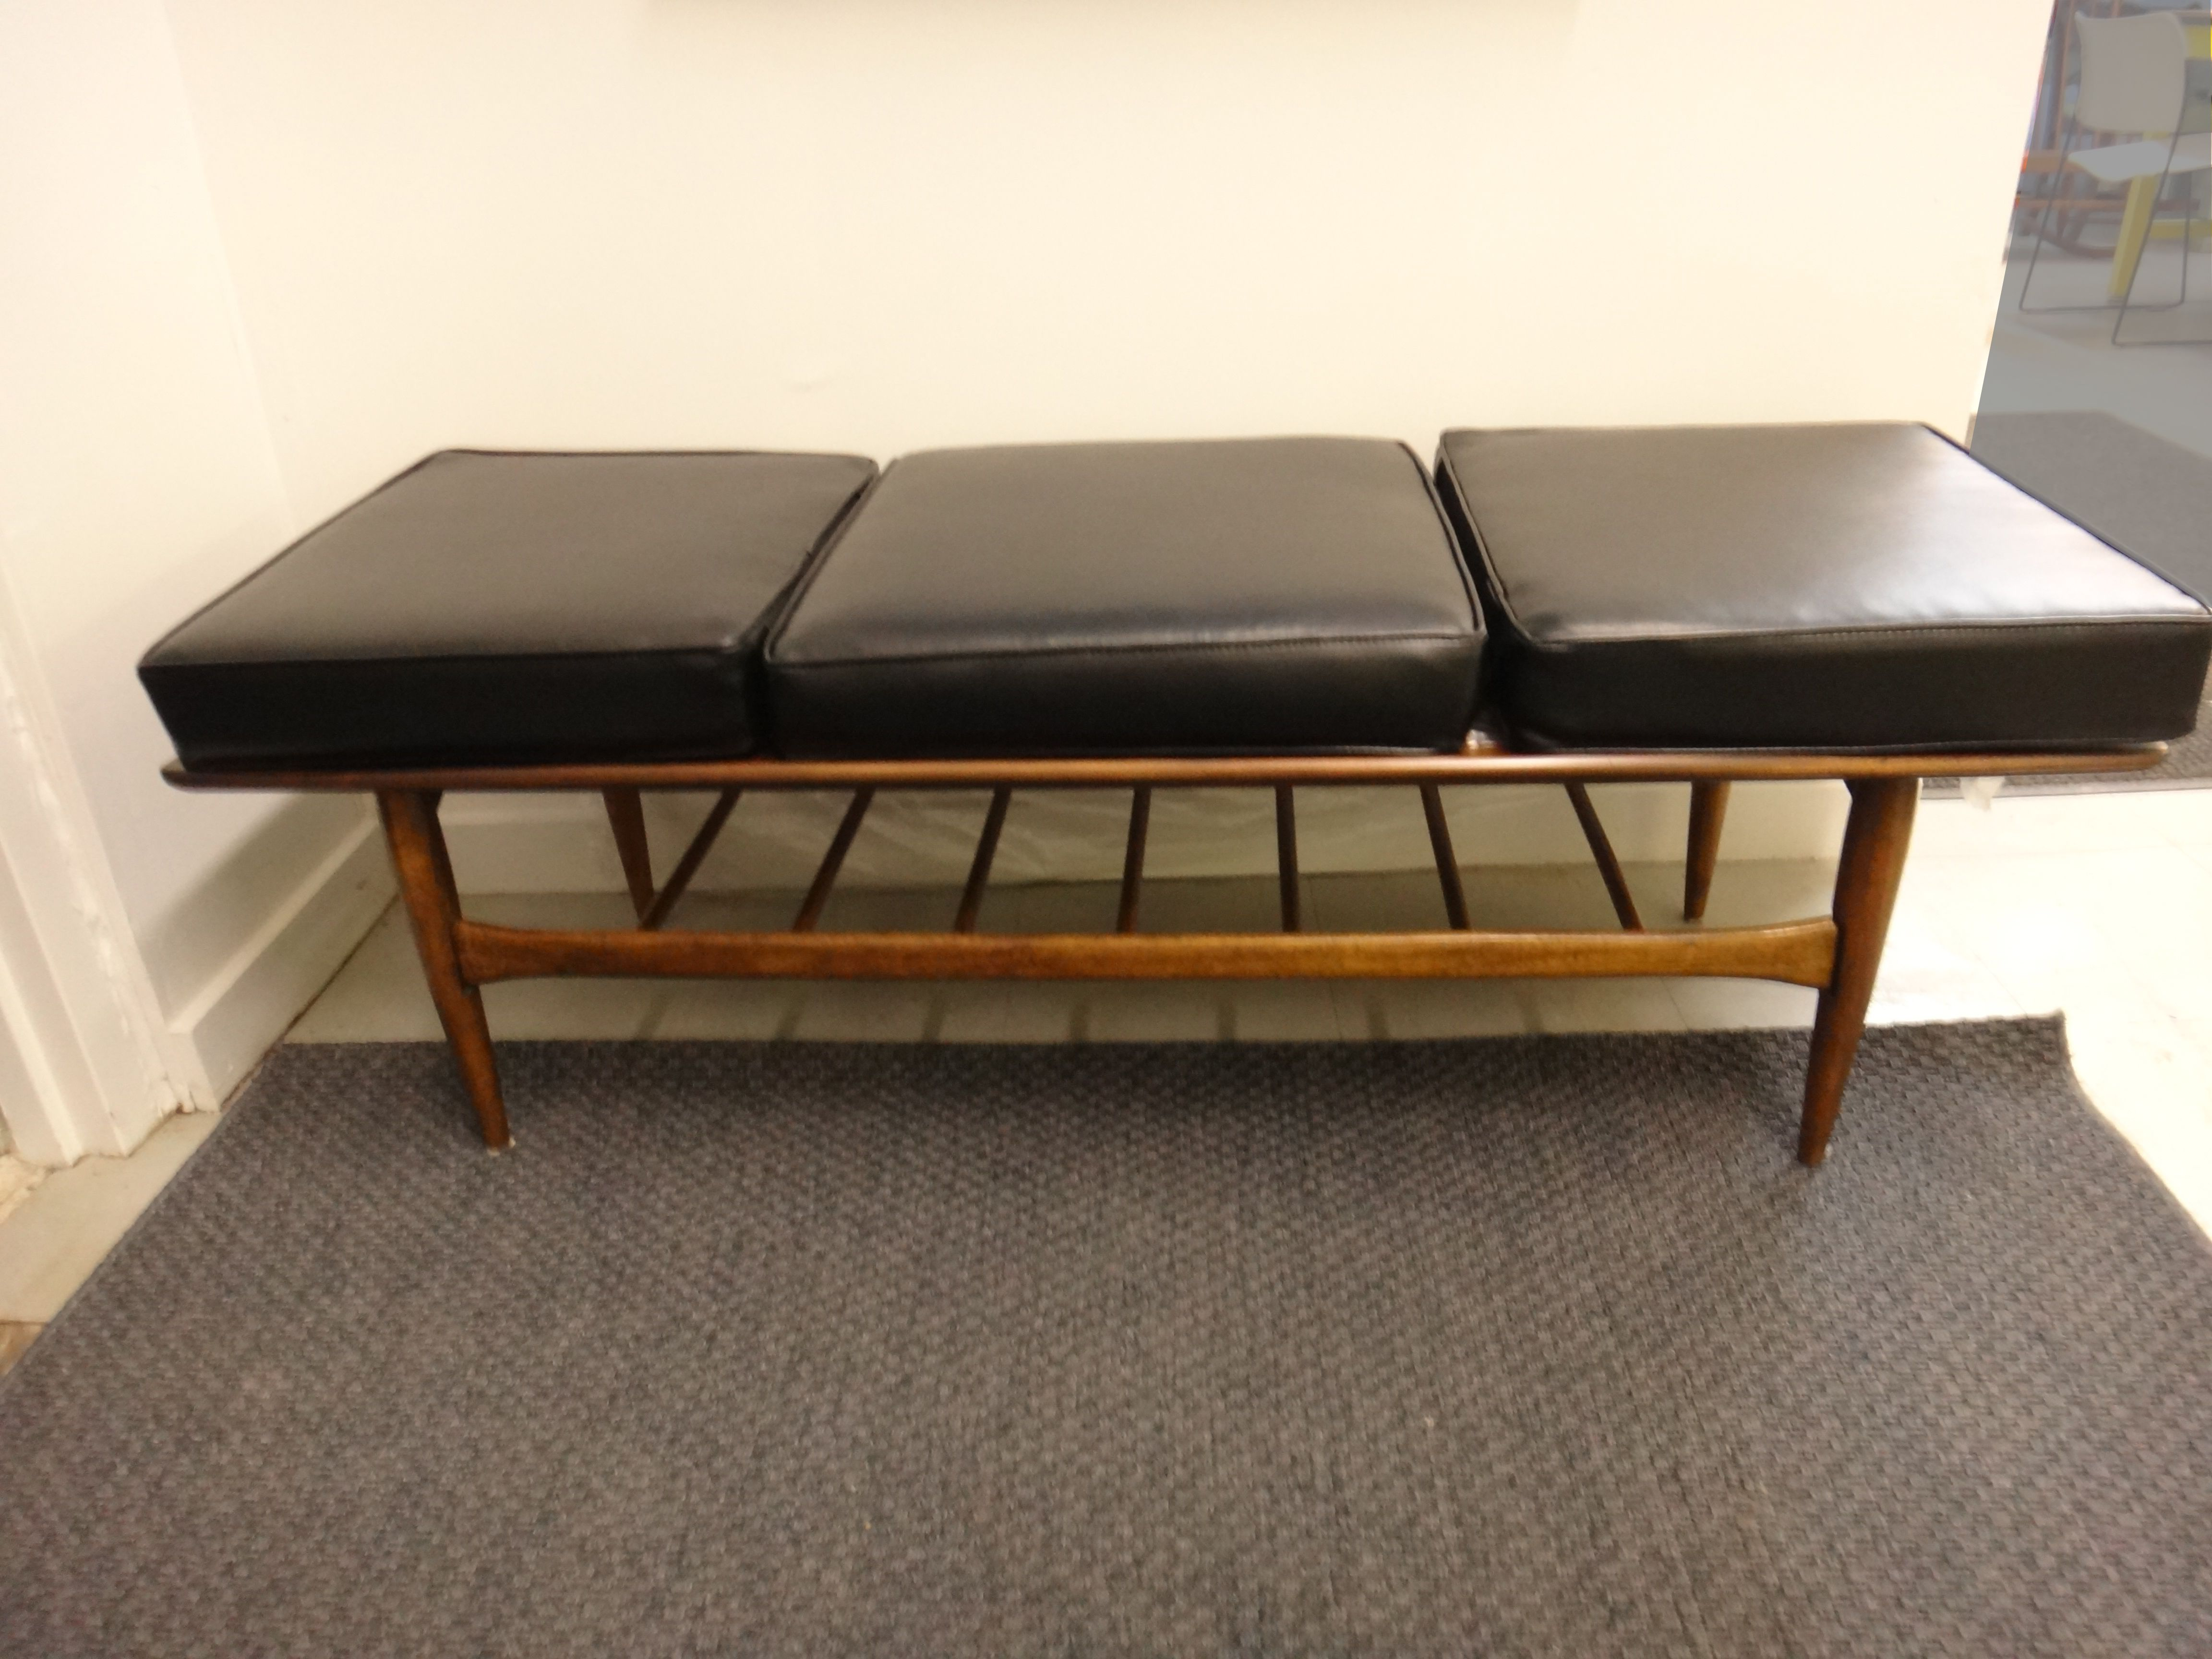 Our customer purchased this Danish modern coffee table from us and then asked us to make black vinyl cushions to fit across the top.